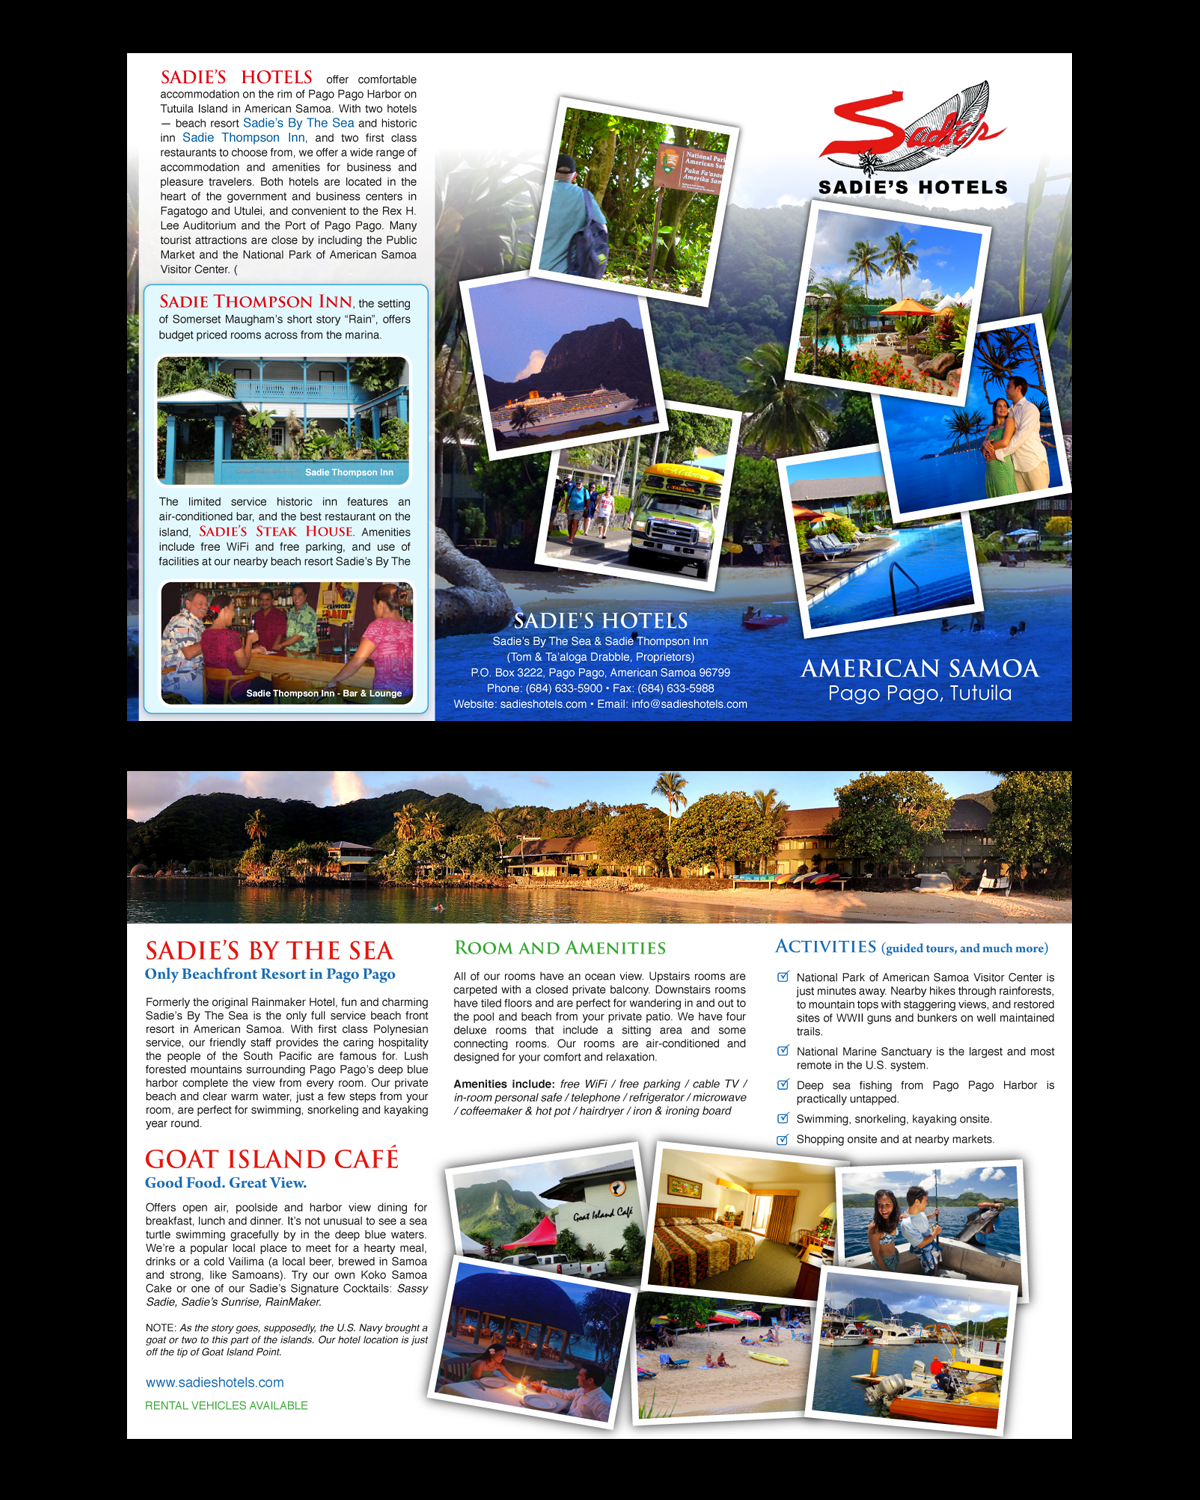 brochure design by uniquedesign10 for sadies hotels design 13826984